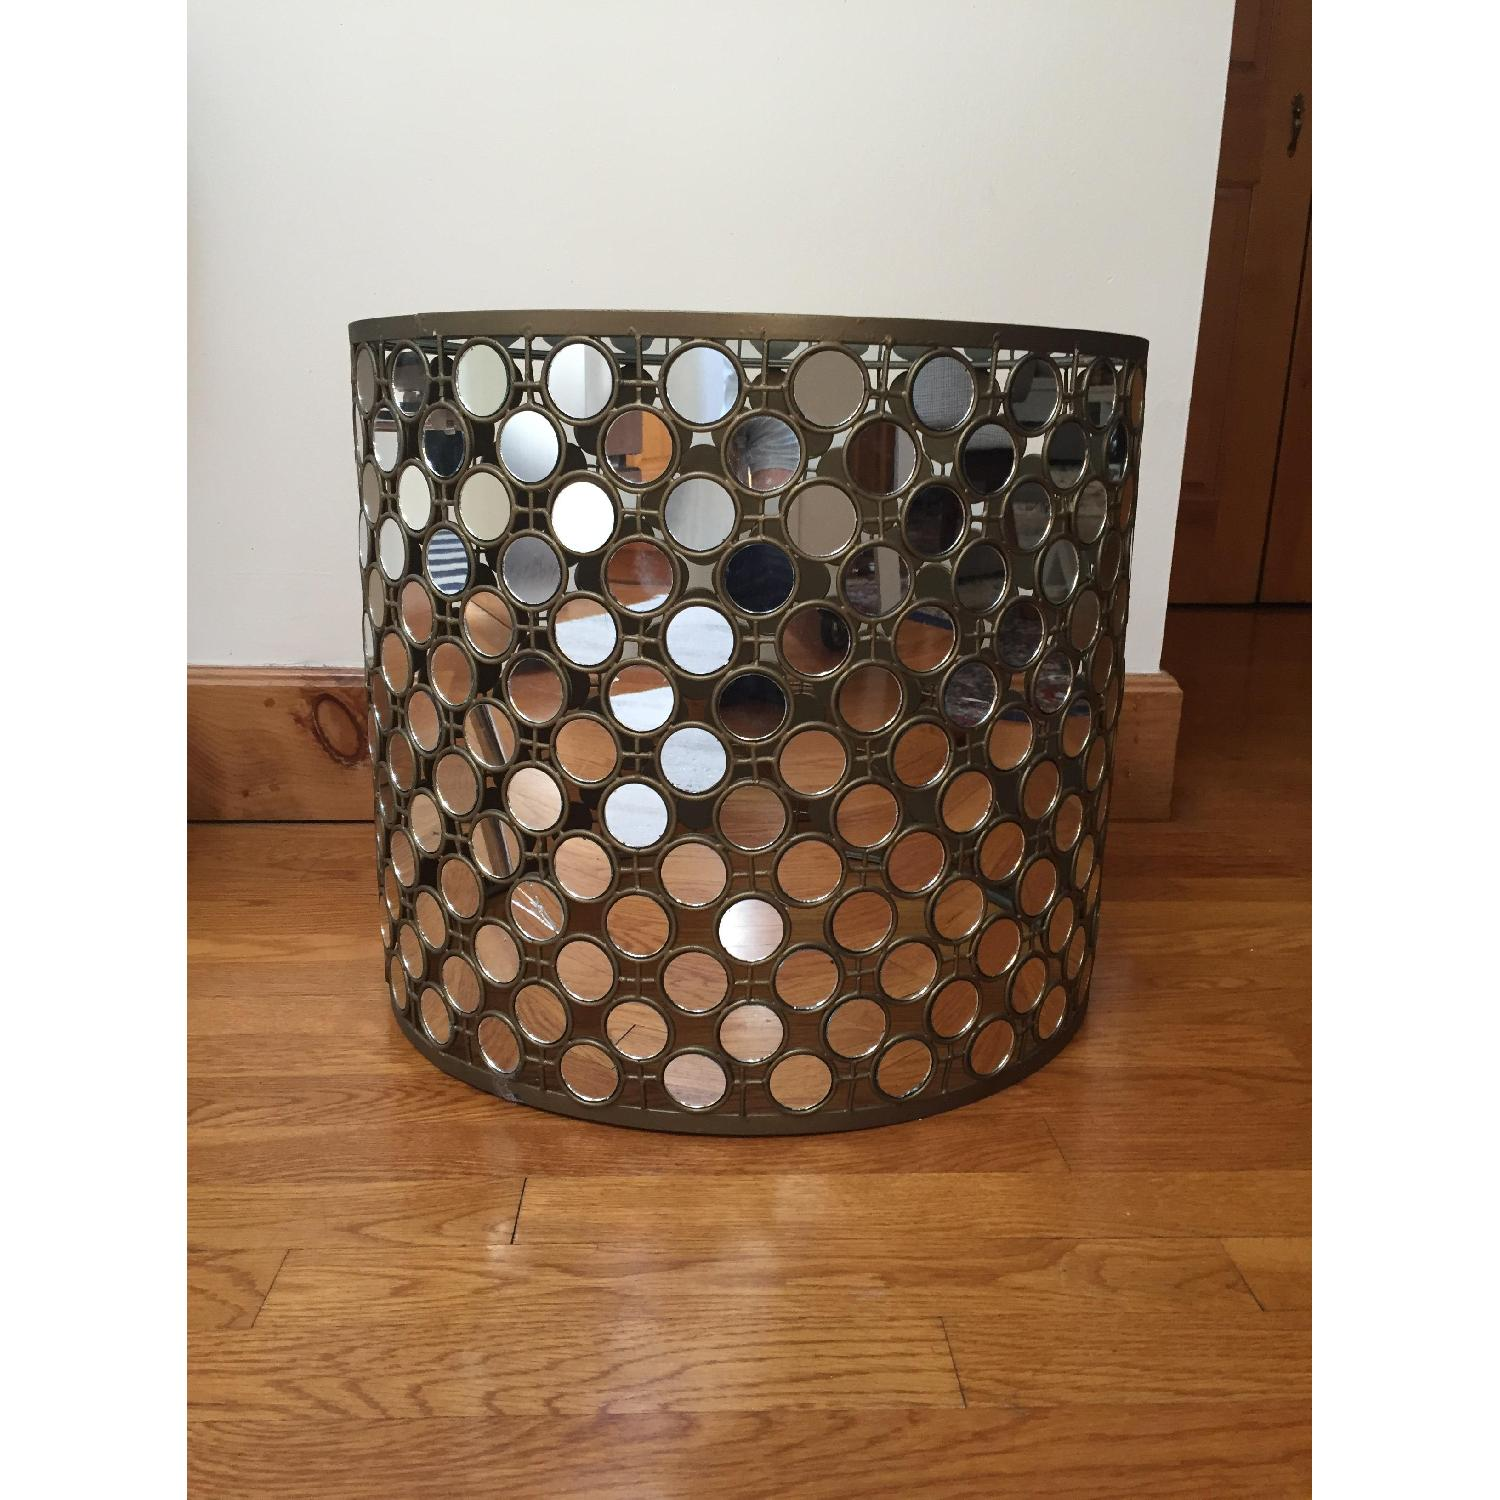 West Elm Mirrored Round Side Table - 2 Available - image-1